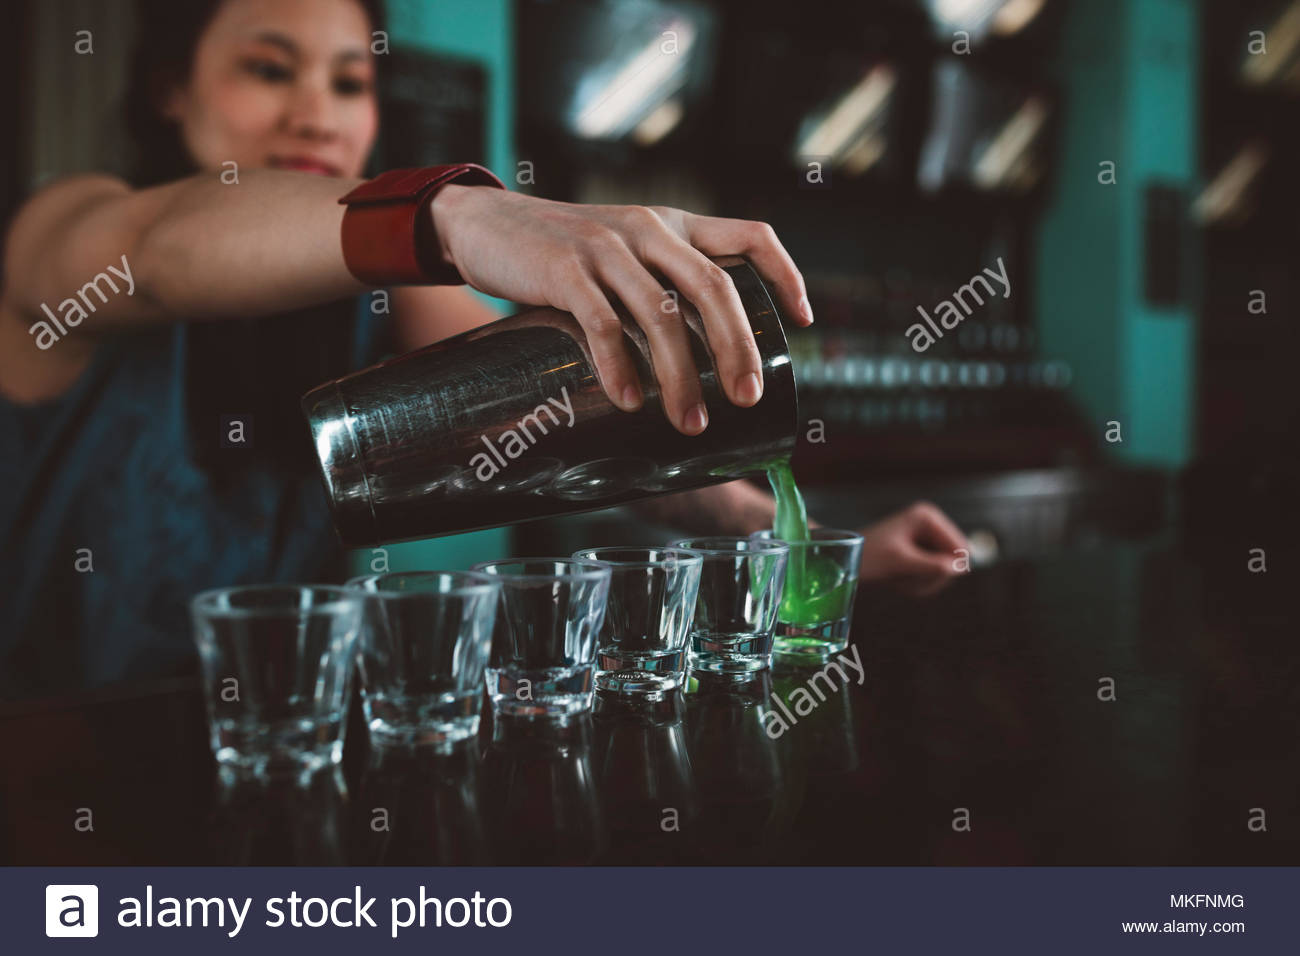 Young female millennial bartender pouring shots at bar - Stock Image